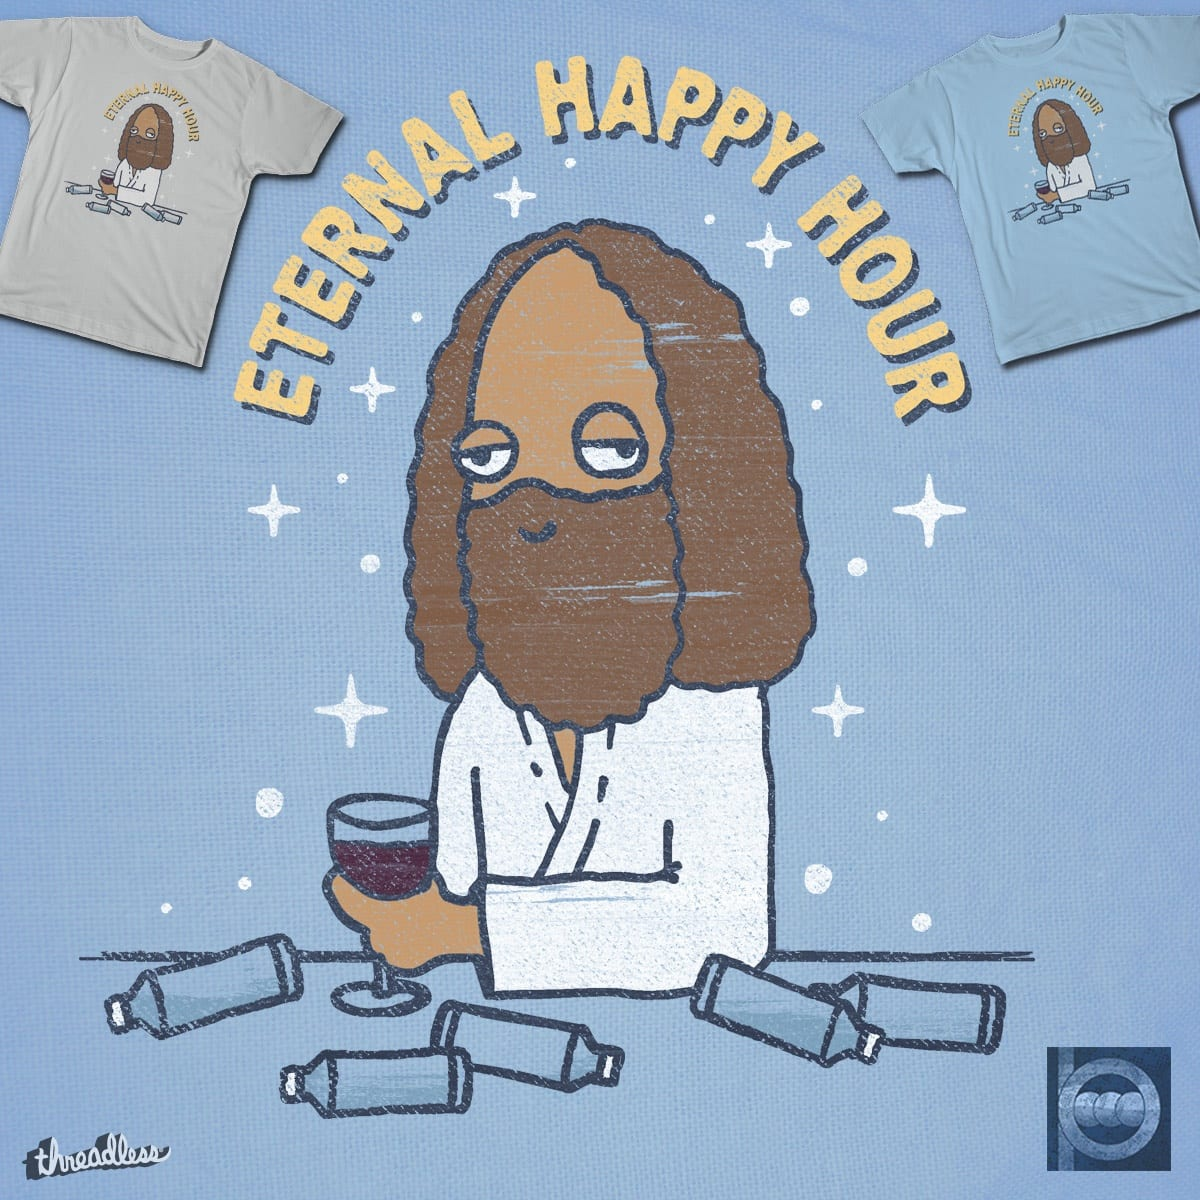 ETERNAL HAPPY HOUR by BeanePod on Threadless